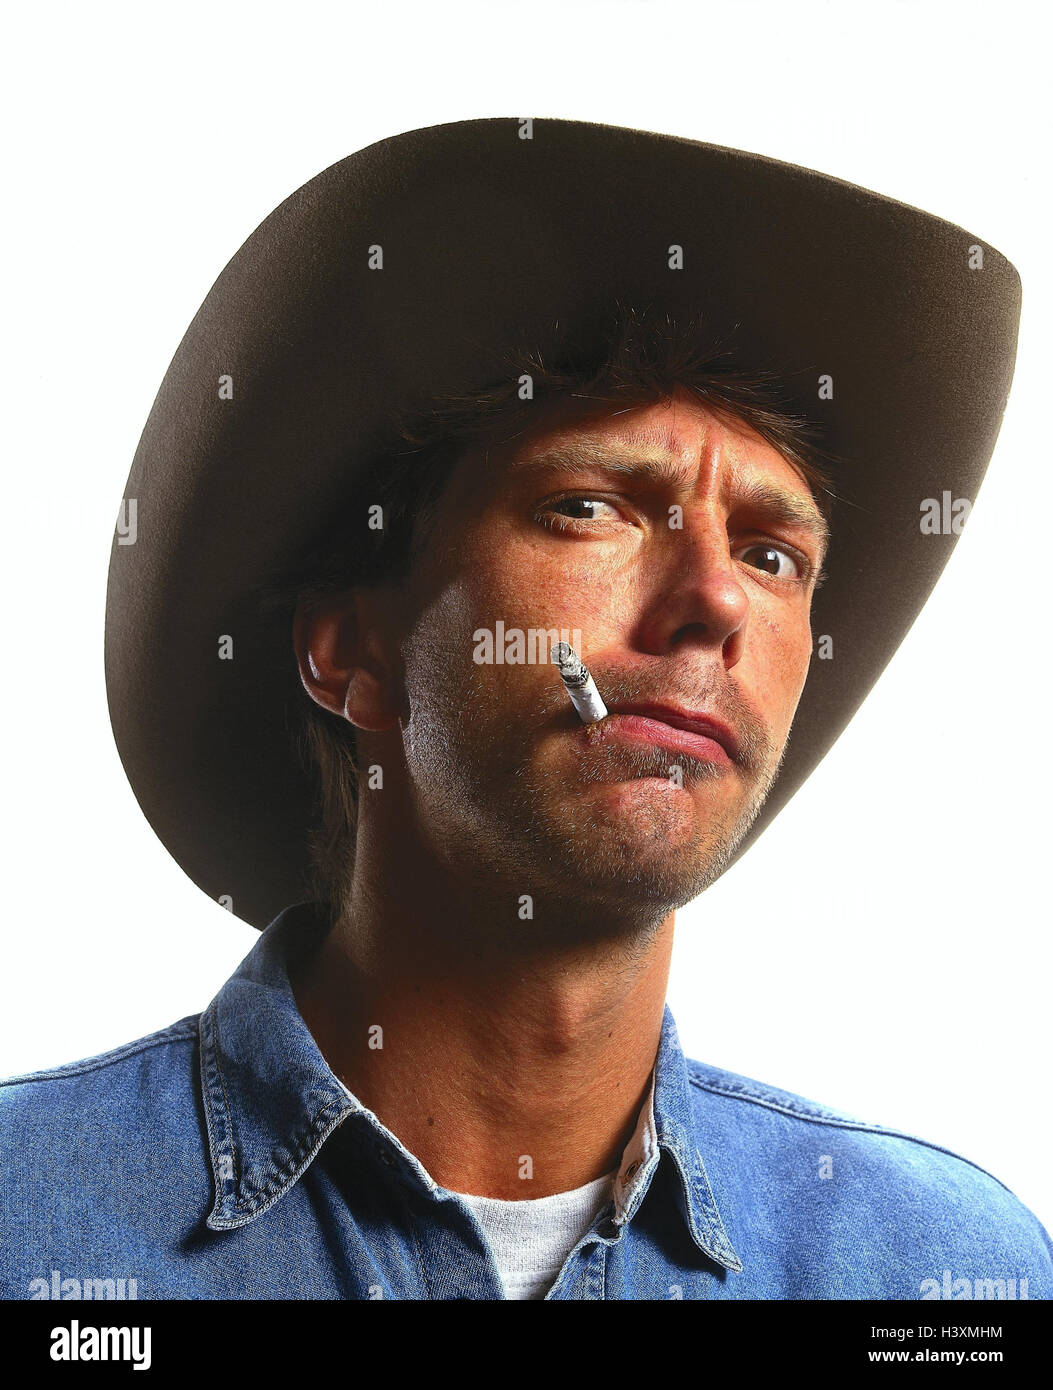 Man, stetson, cigarette, portrait, inside, young, care, facial play, seriously, fiercely, smoke, nicotine, warn, warning, threat, threaten, nastily, malice, resolutely, determination, crustily, irritable, grows bitter, studio, cut out Stock Photo